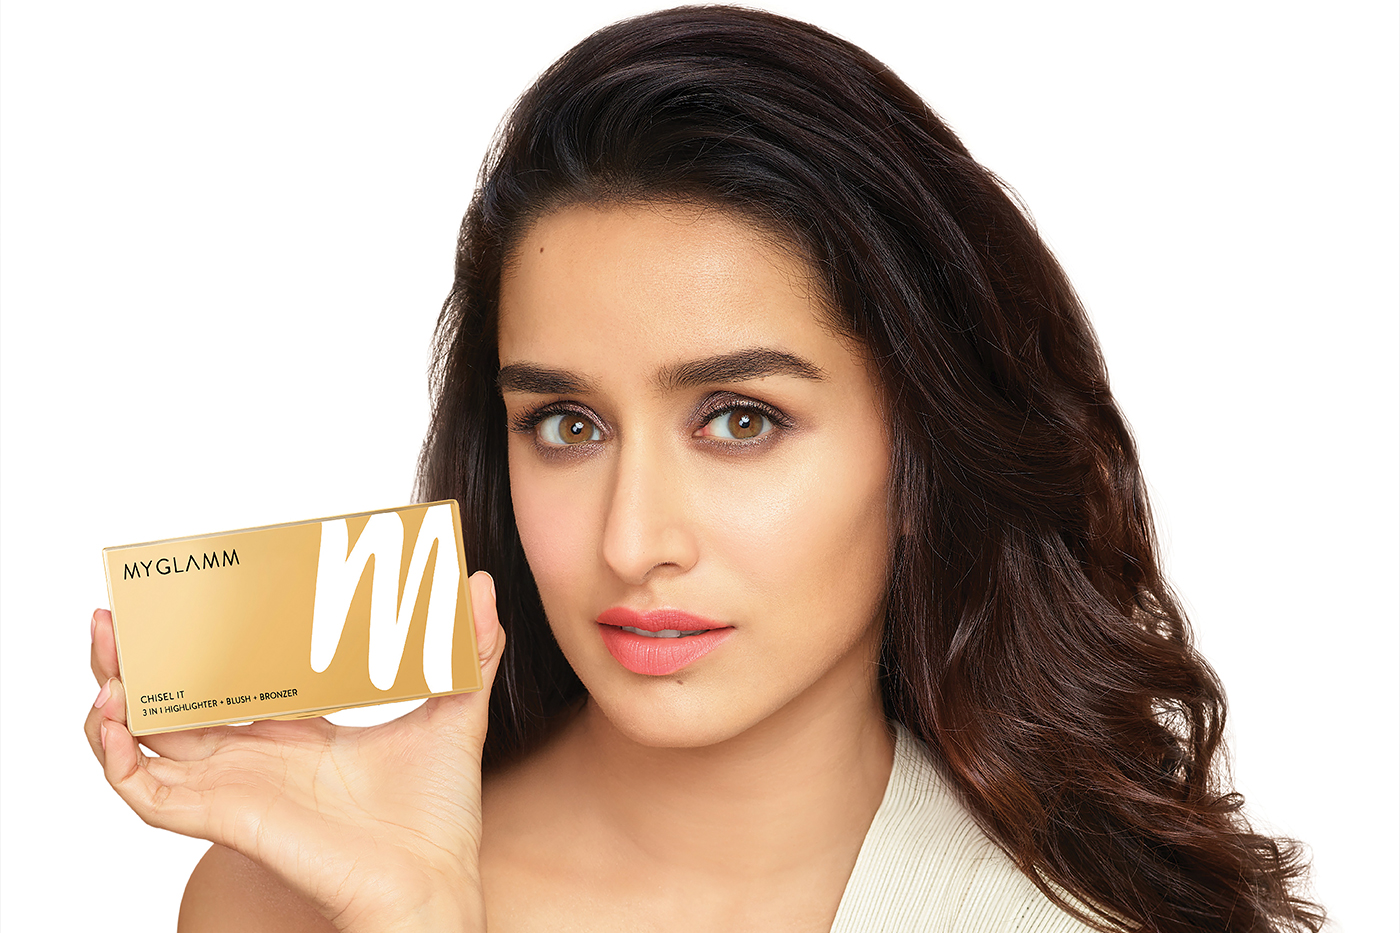 MyGlamm launches its national TVC featuring Shraddha Kapoor